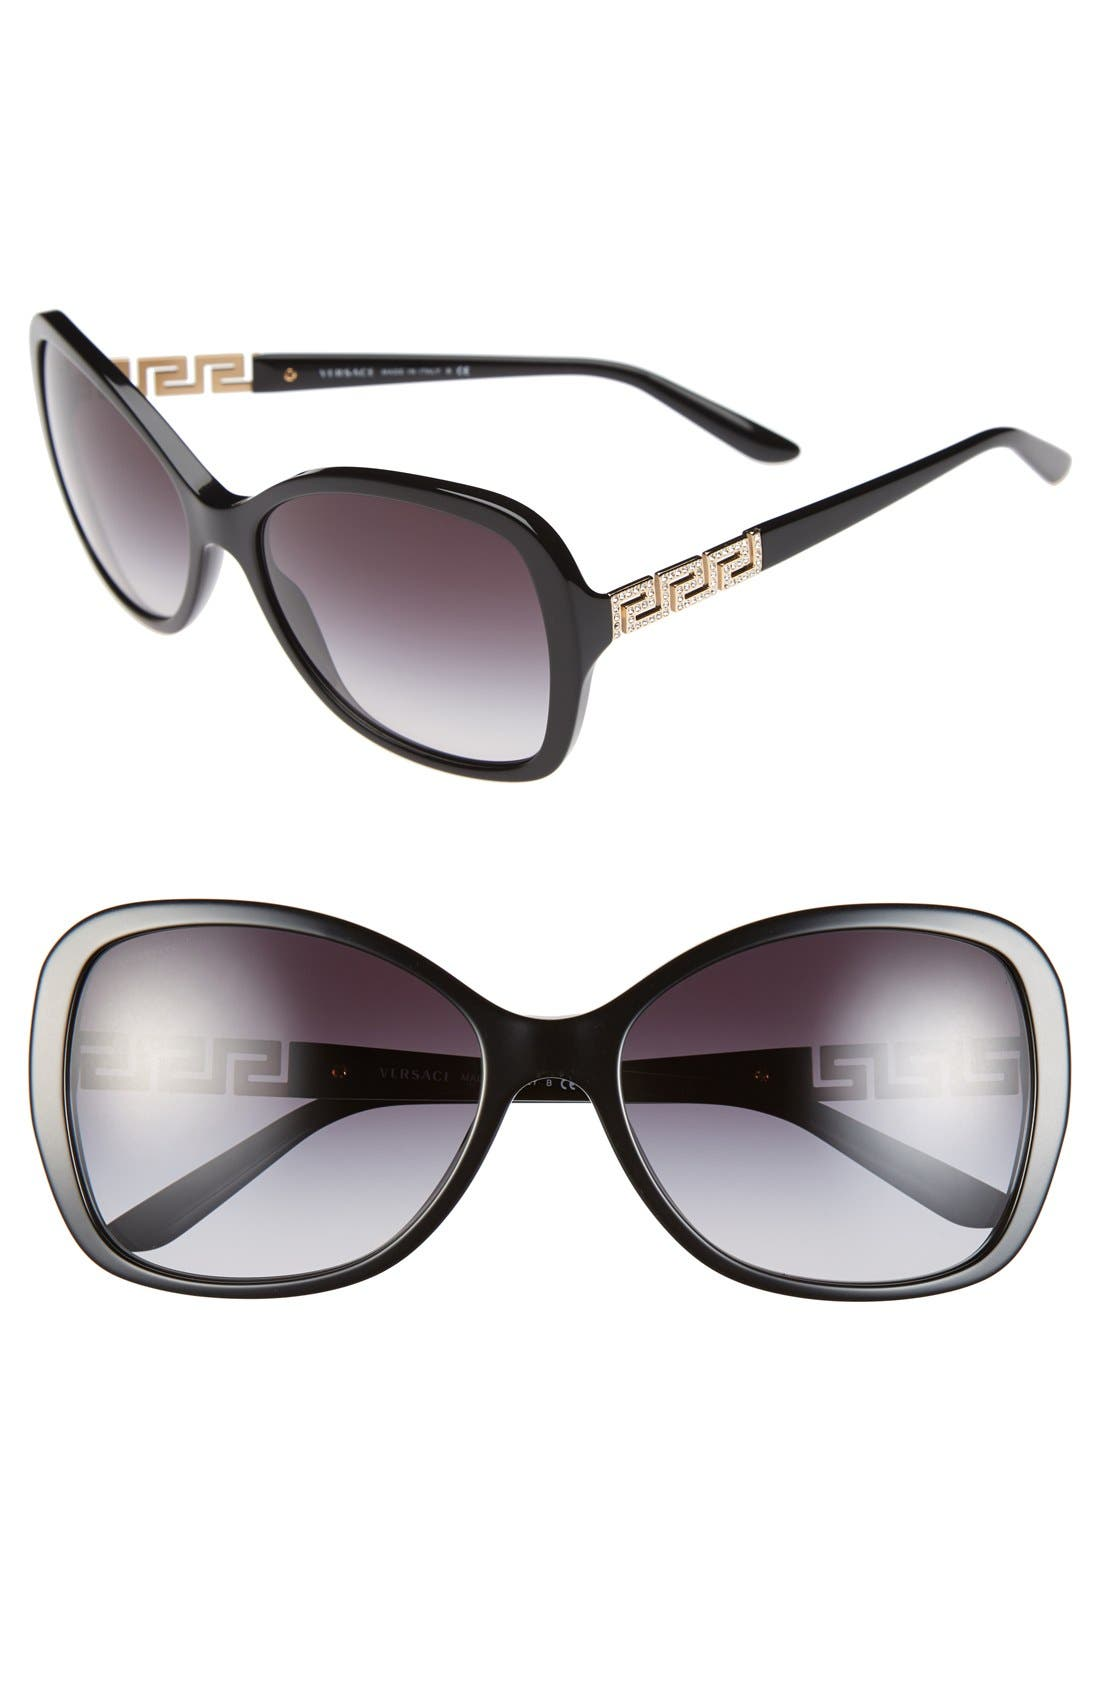 58mm Butterfly Sunglasses,                             Main thumbnail 1, color,                             001